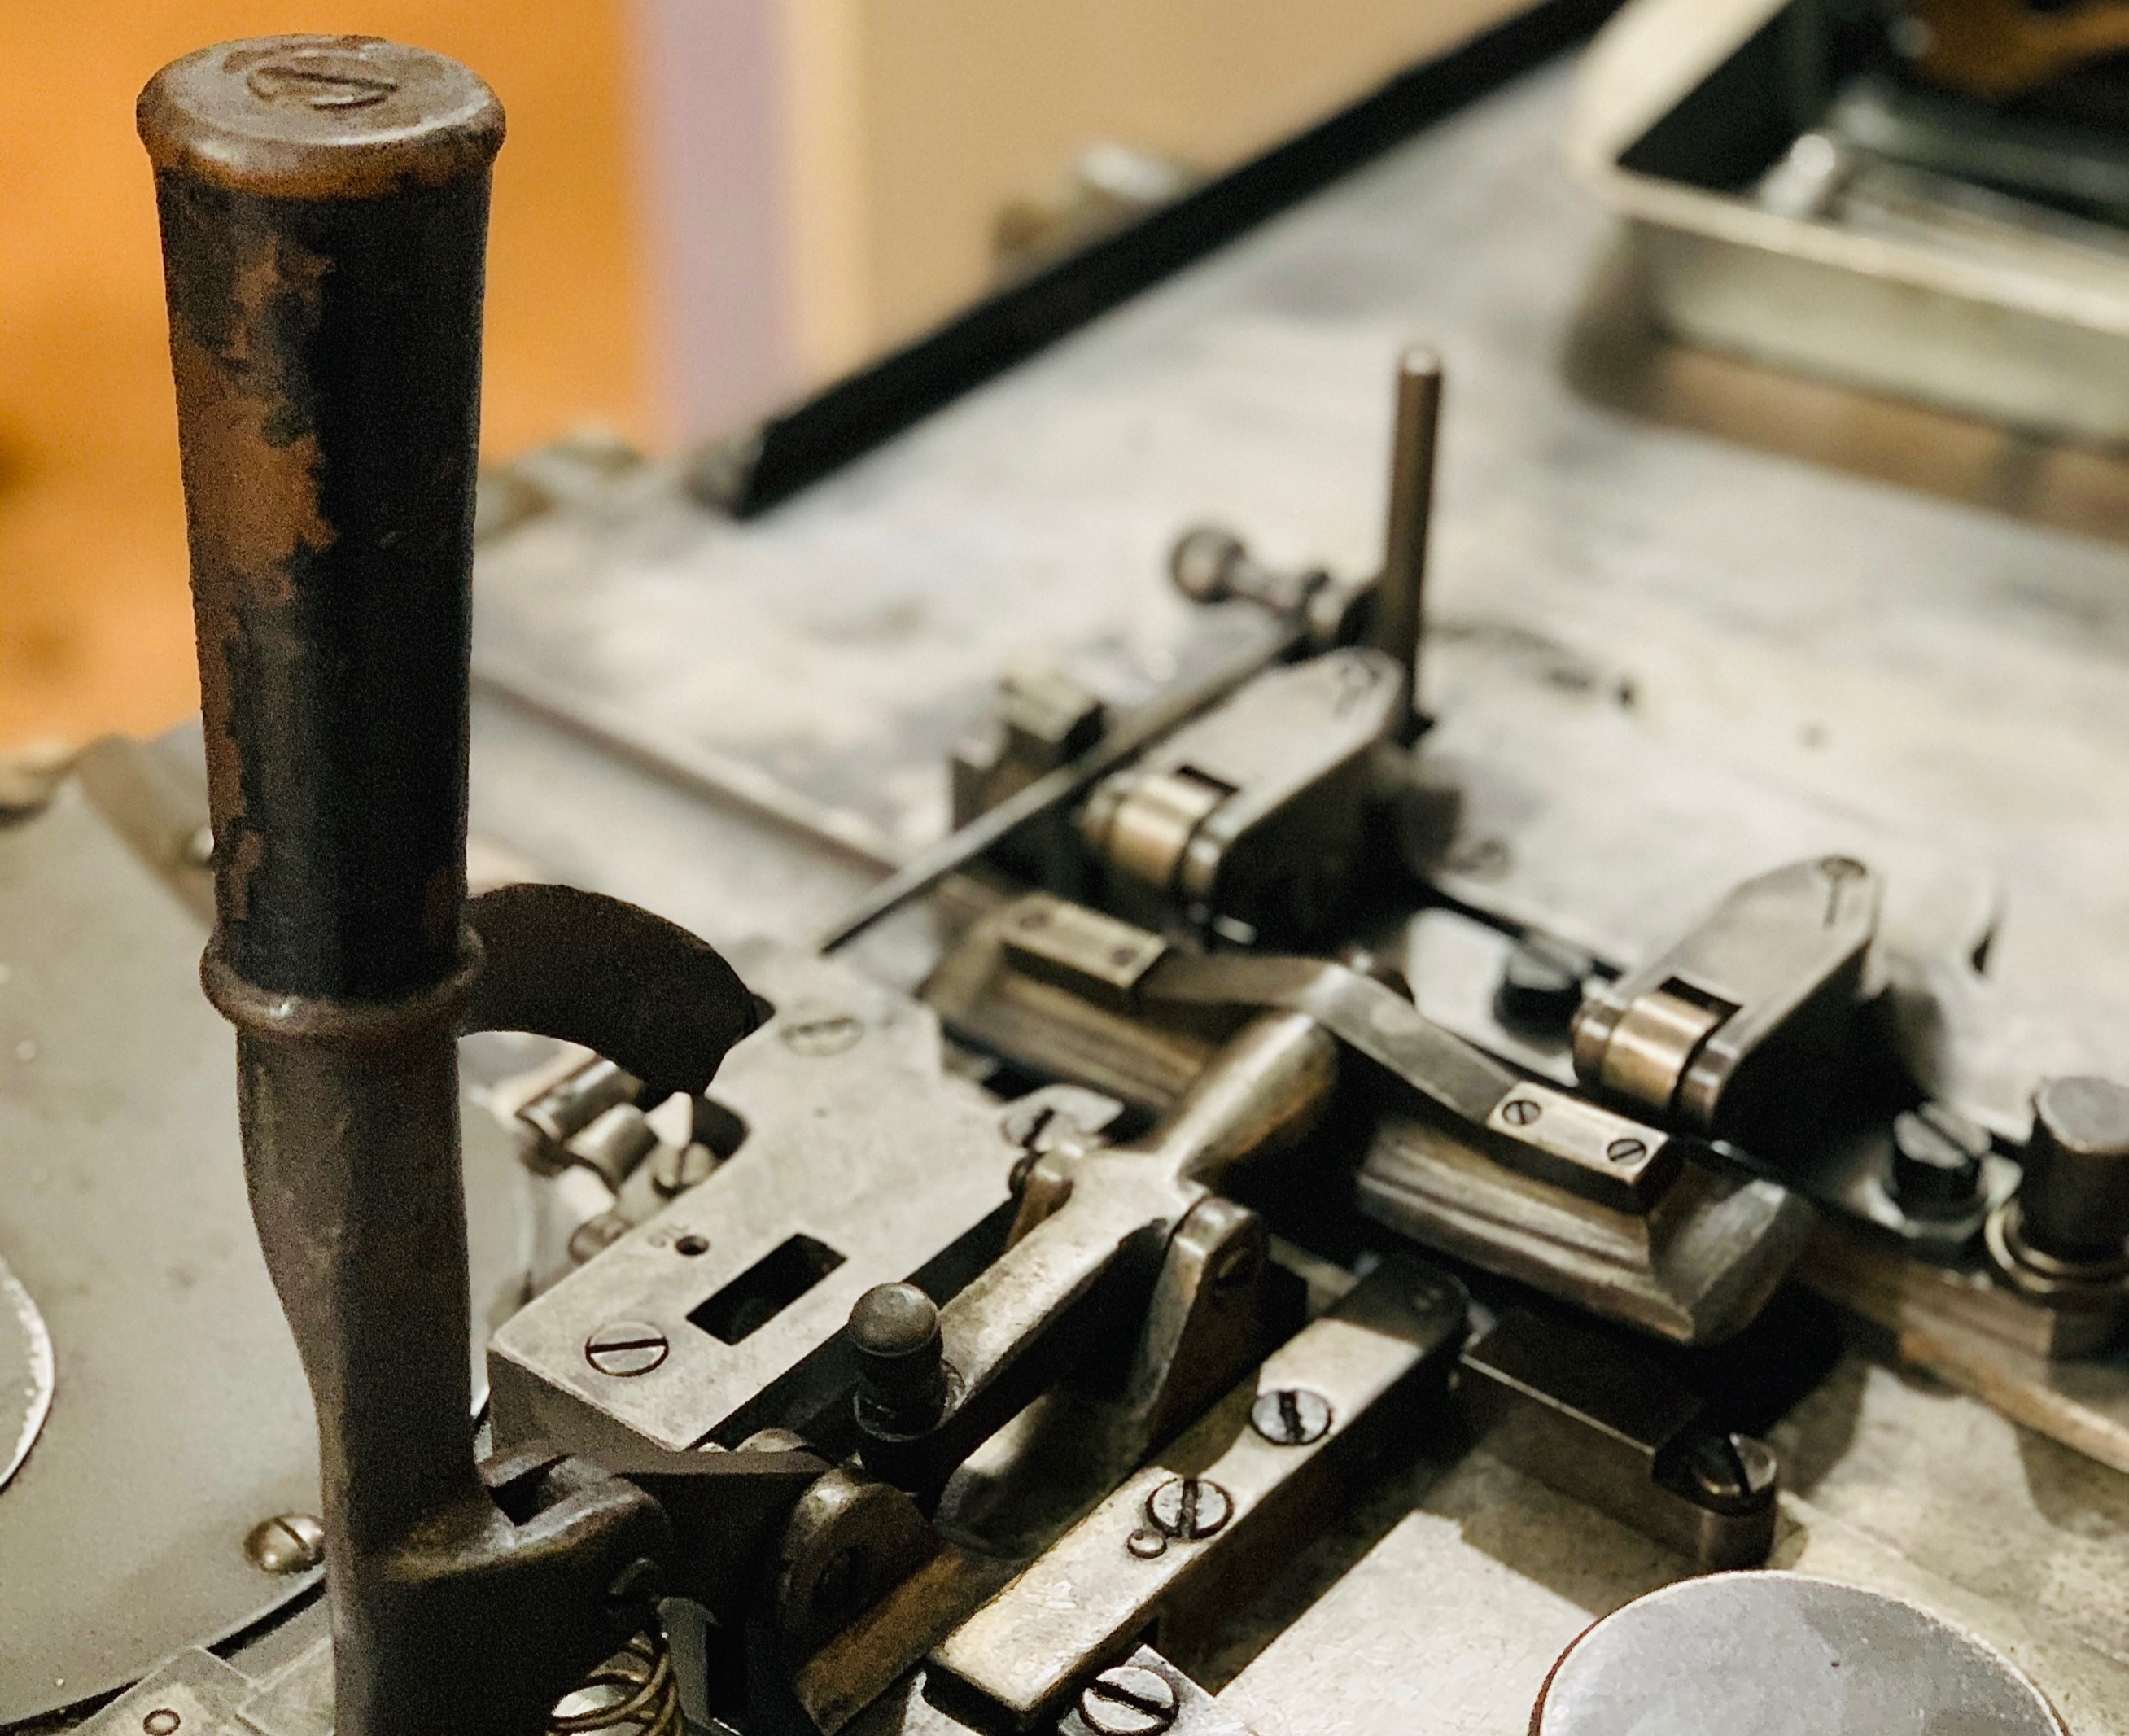 Top handle of a Ludlow Typograph machine